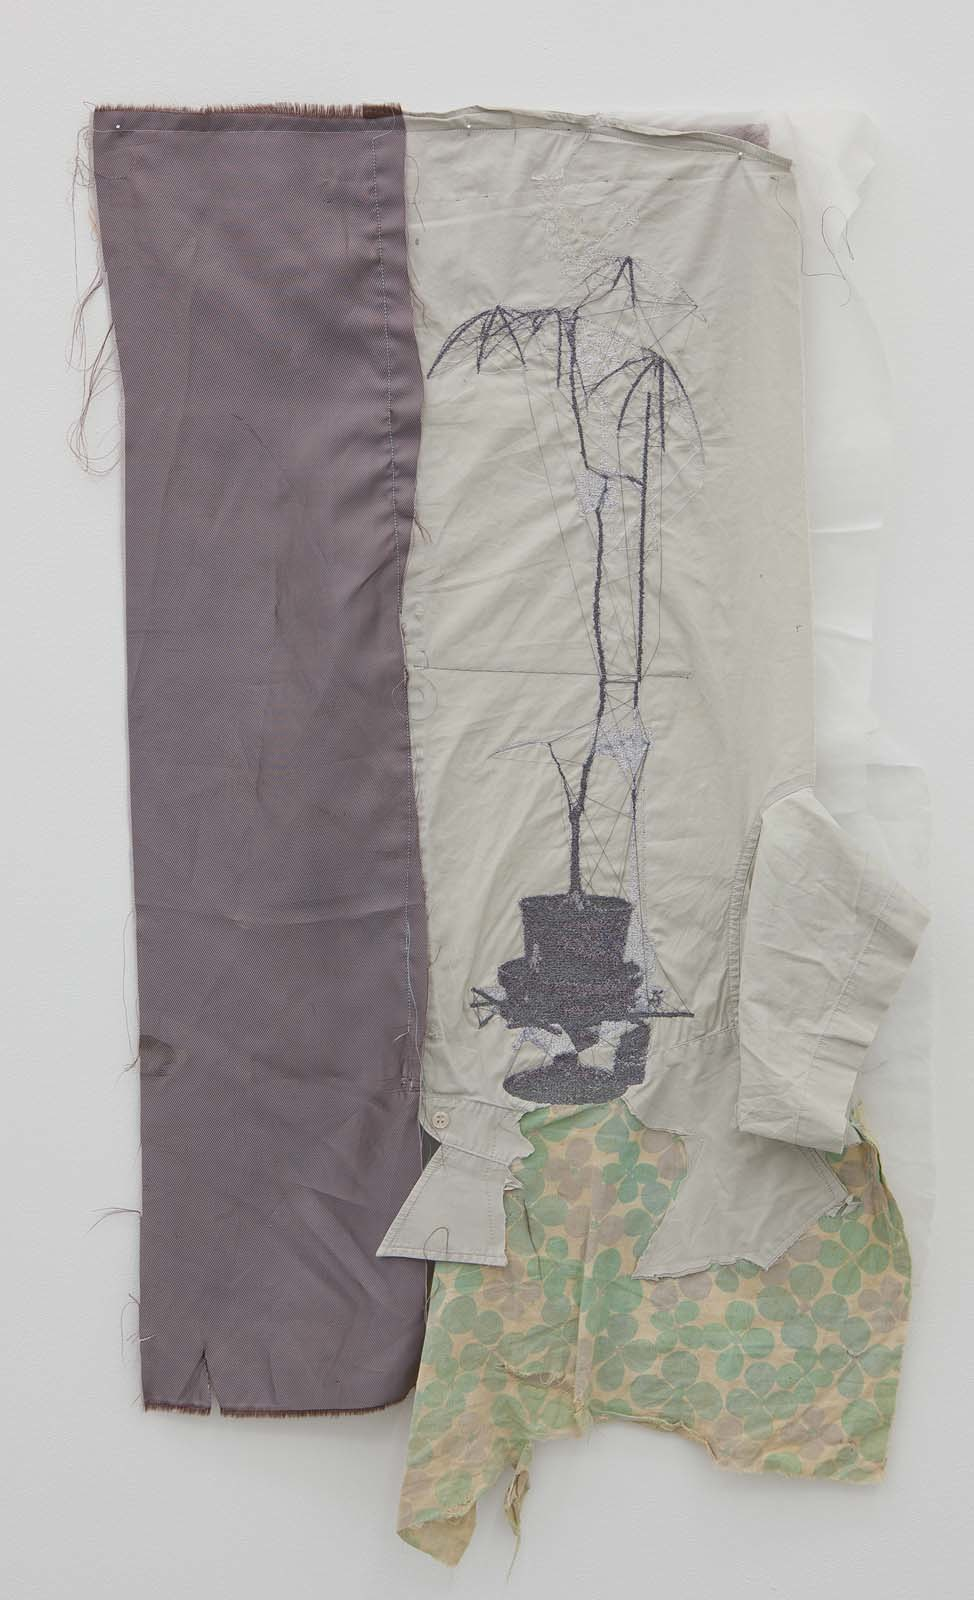 Sustainable, 2010, embroidery on various textiles